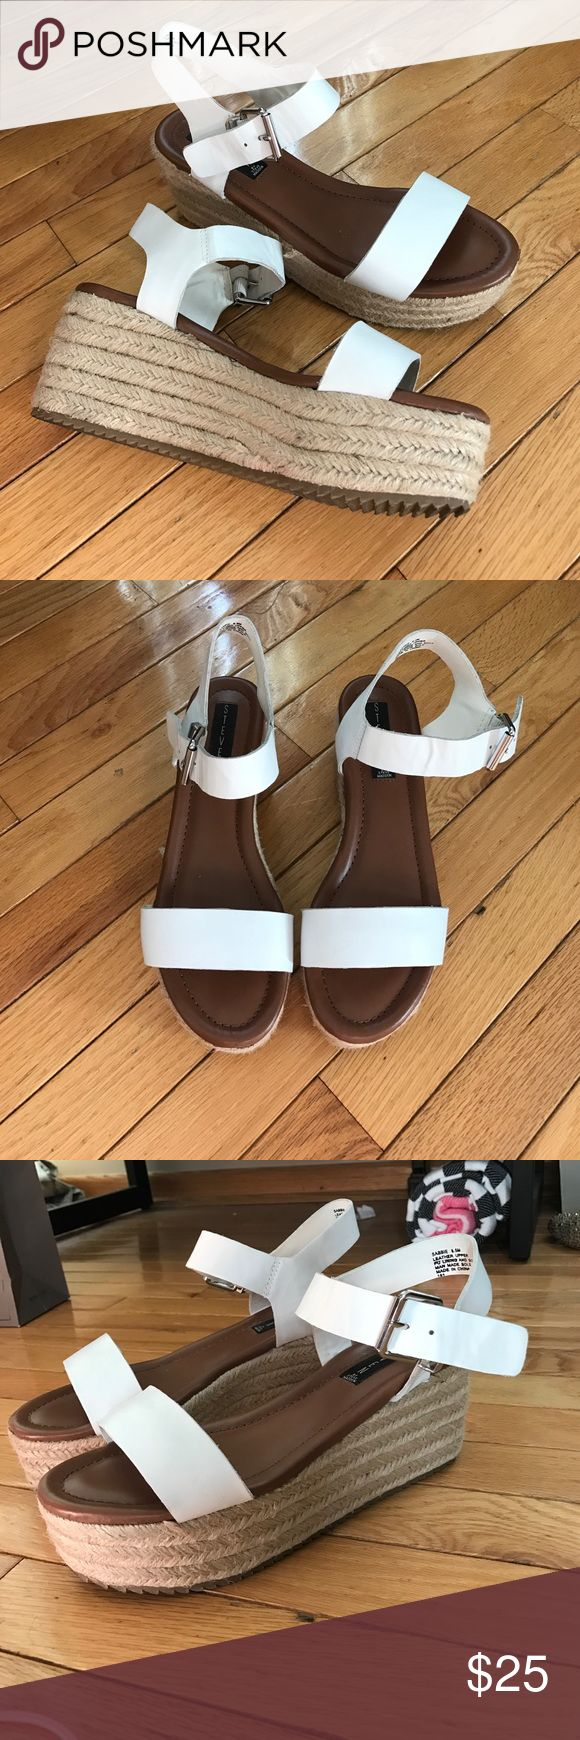 ⚡️Steven by Steve Madden platform sandals Steven by Steve Madden white espadrille platform sandals with white straps size 8.5. Great condition, one spot where espadrille is coming undone (in photo). Perfect for spring! Steven by Steve Madden Shoes Sandals